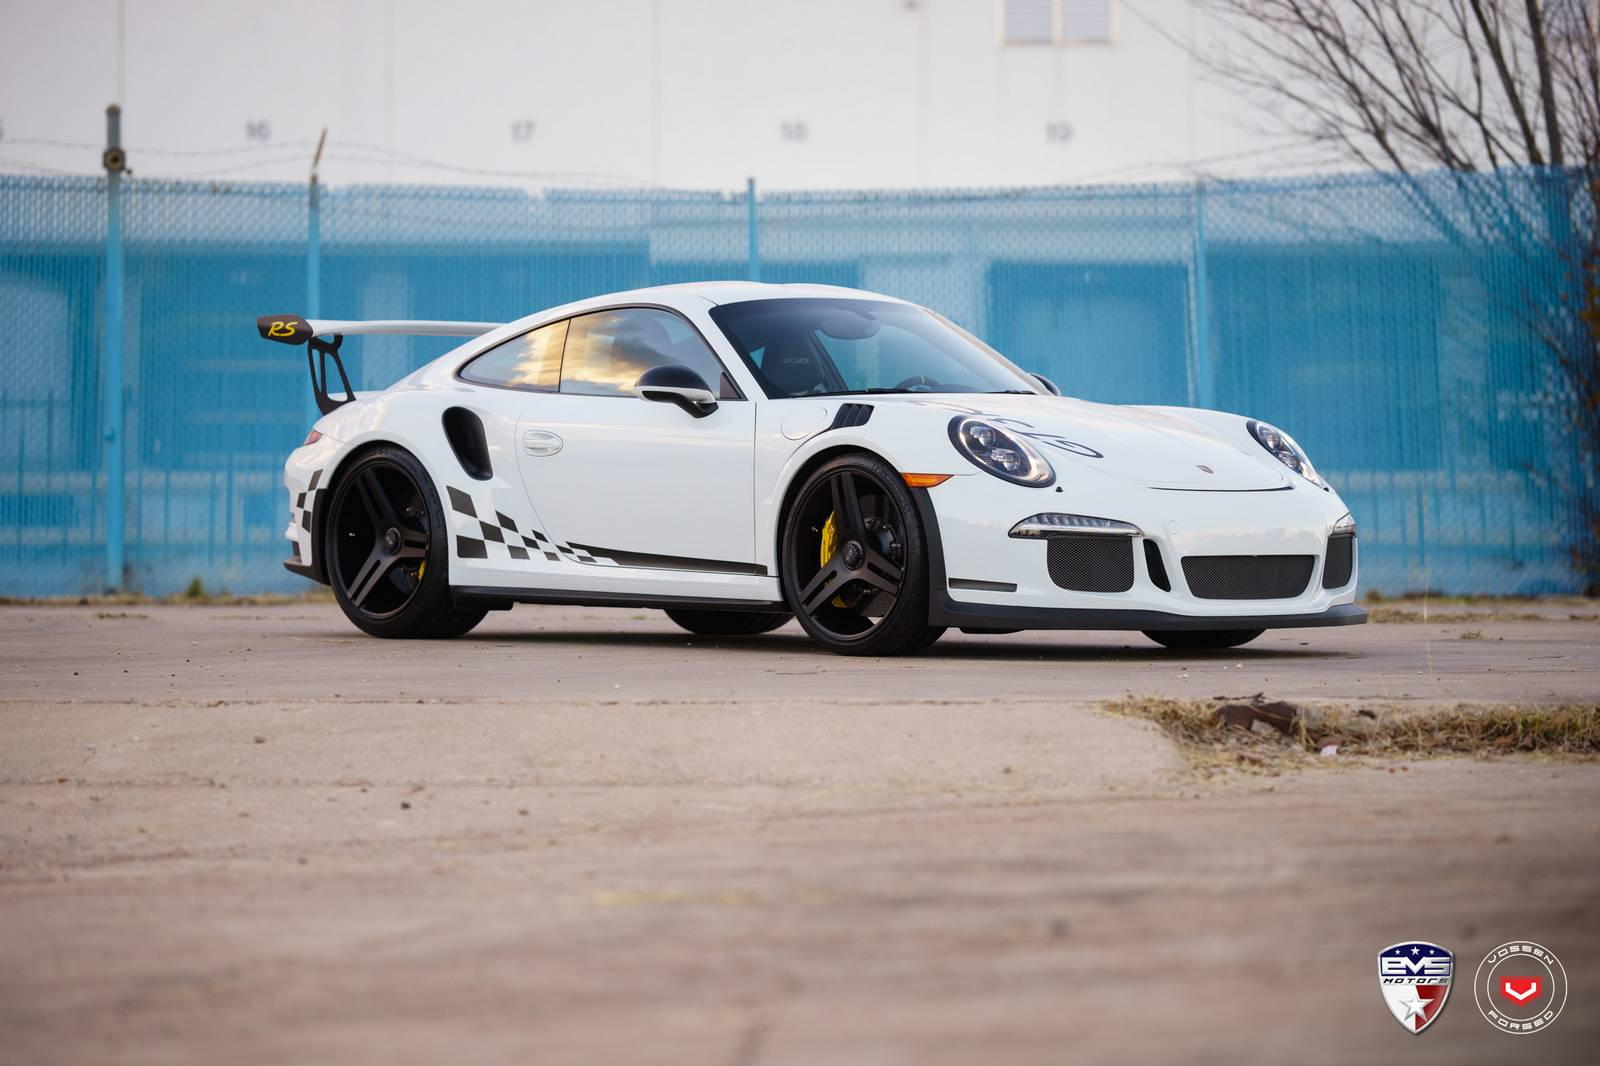 Porsche 911 Gt3 Rs Rides On Vossen Wheels Gtspirit